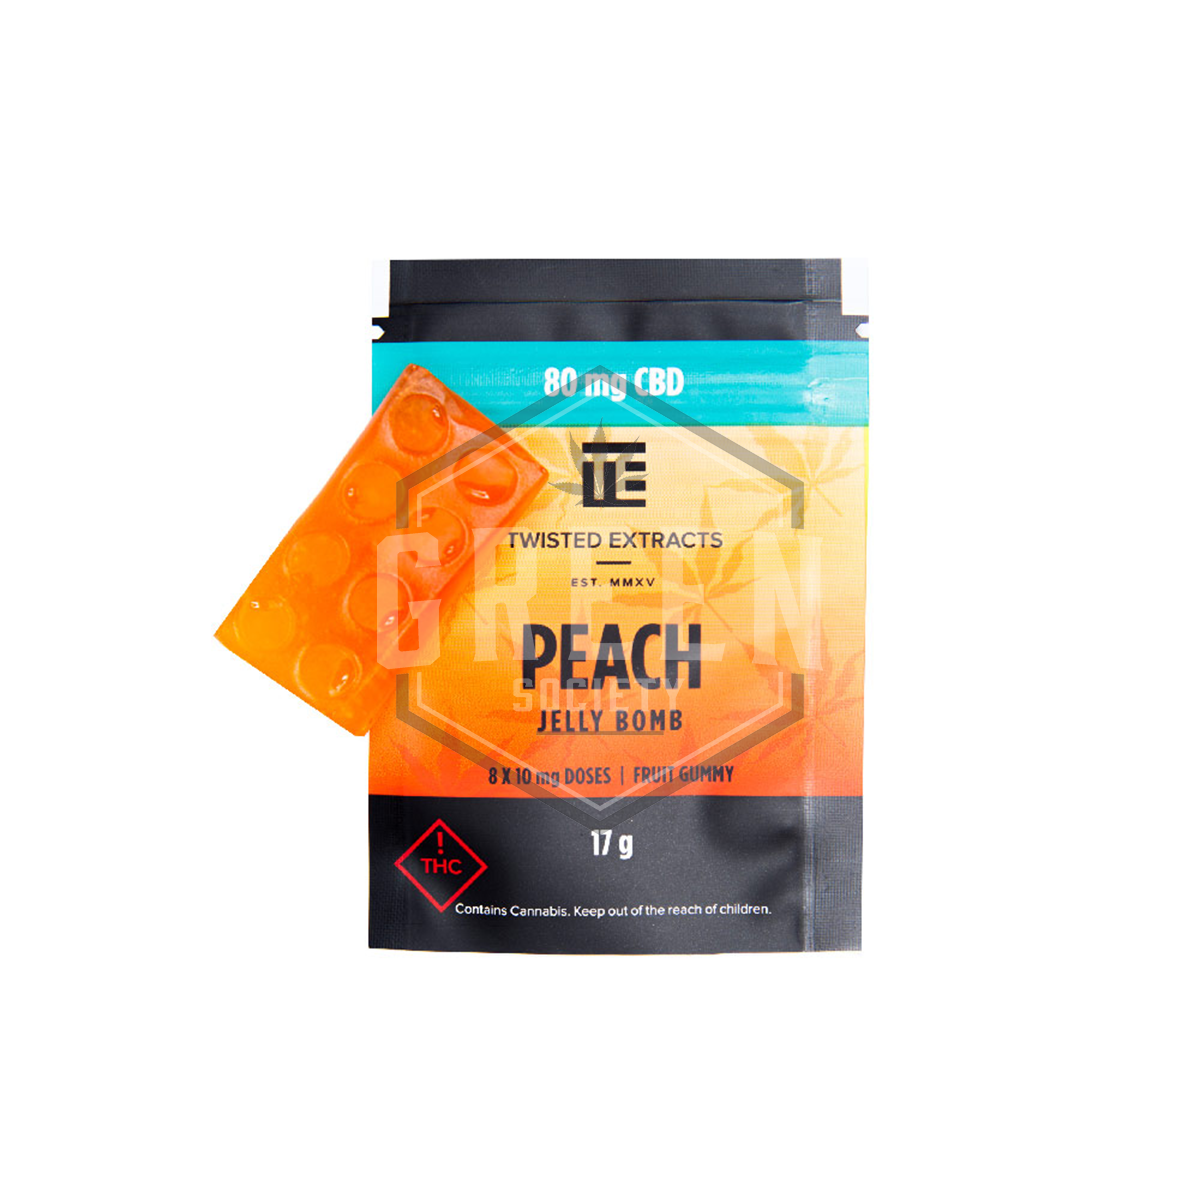 Peach (CBD) Jelly Bomb by Twisted Extracts by Green Society - Image © 2018 Green Society. All Rights Reserved.